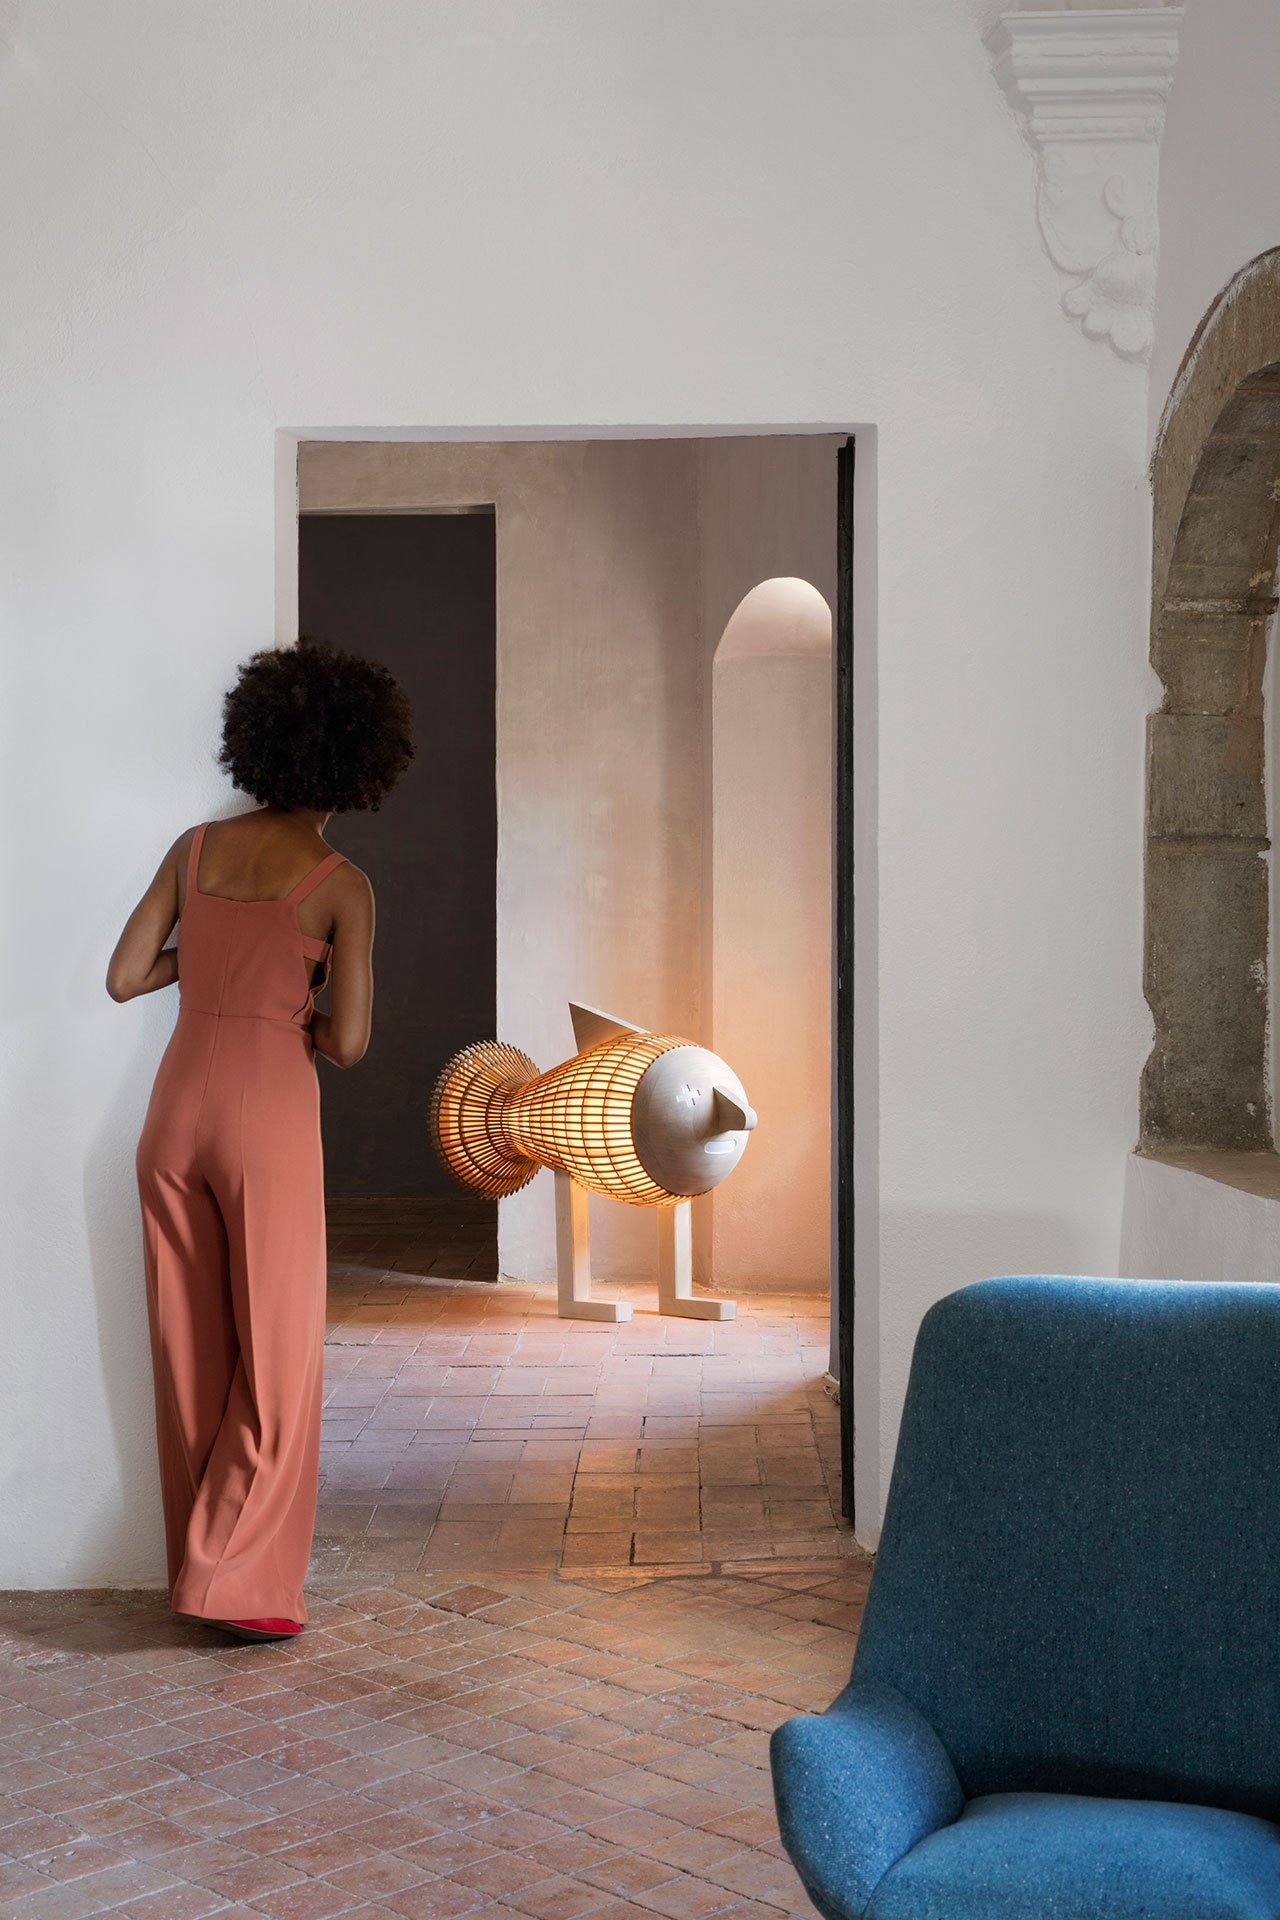 Fish LS floor lamp by Isidro Ferrer, from the Palacio de Casavells photo shoot. Photo by KlunderBie Studio.